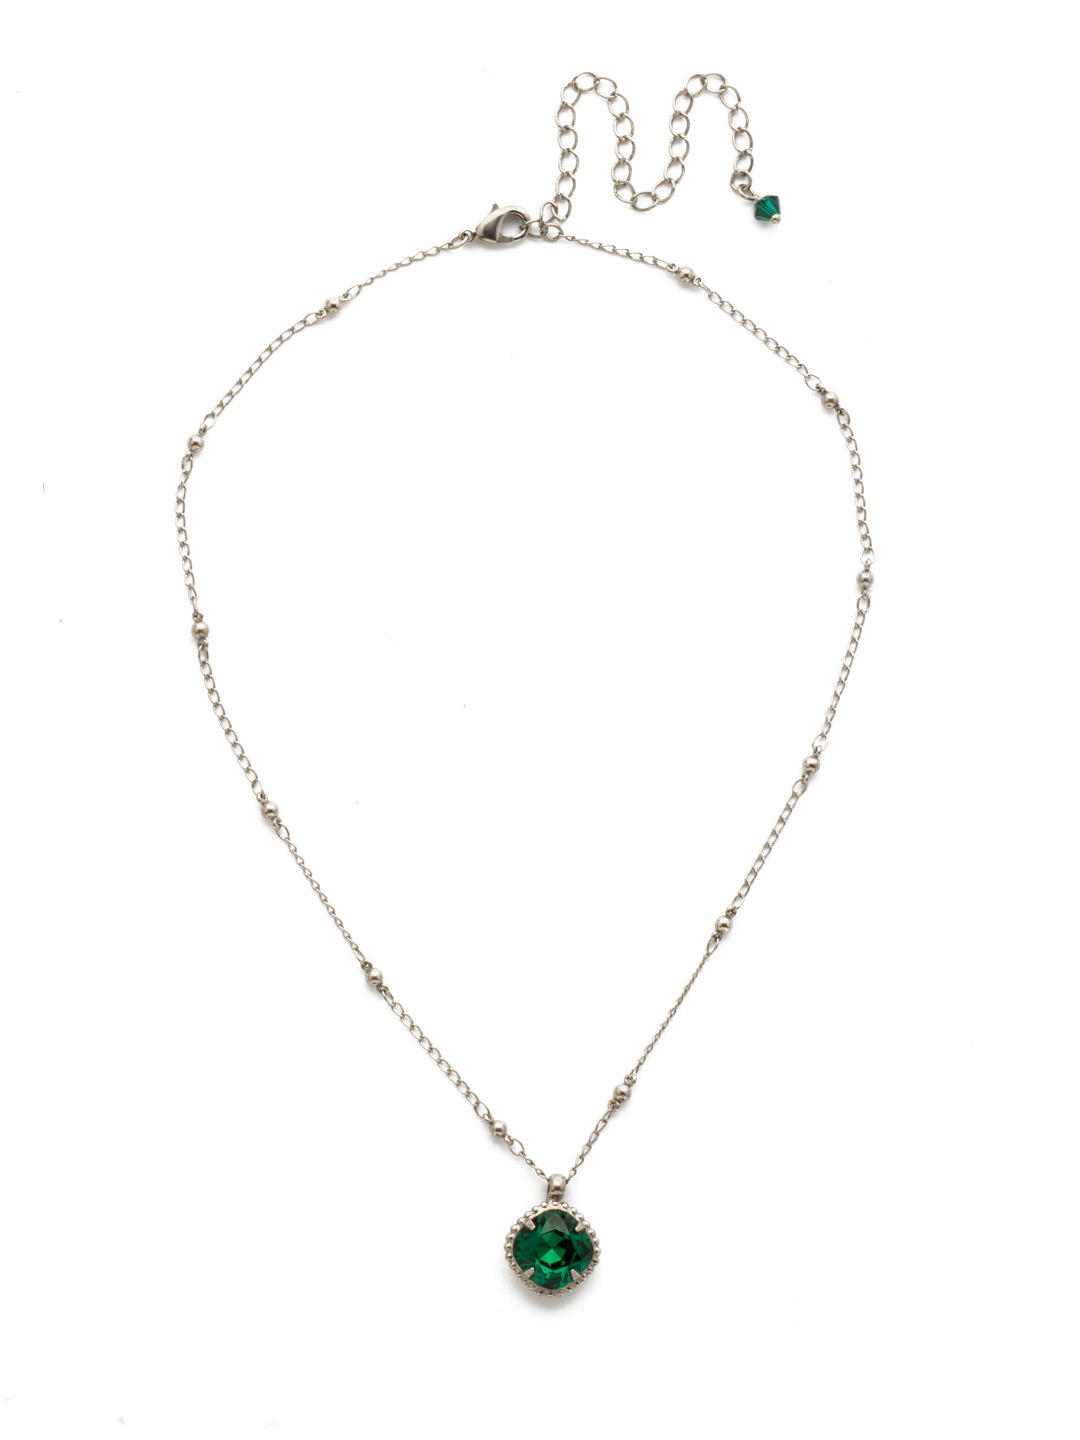 Cushion-Cut Solitaire Necklace - Sorrelli Essentials - NDS50ASEME